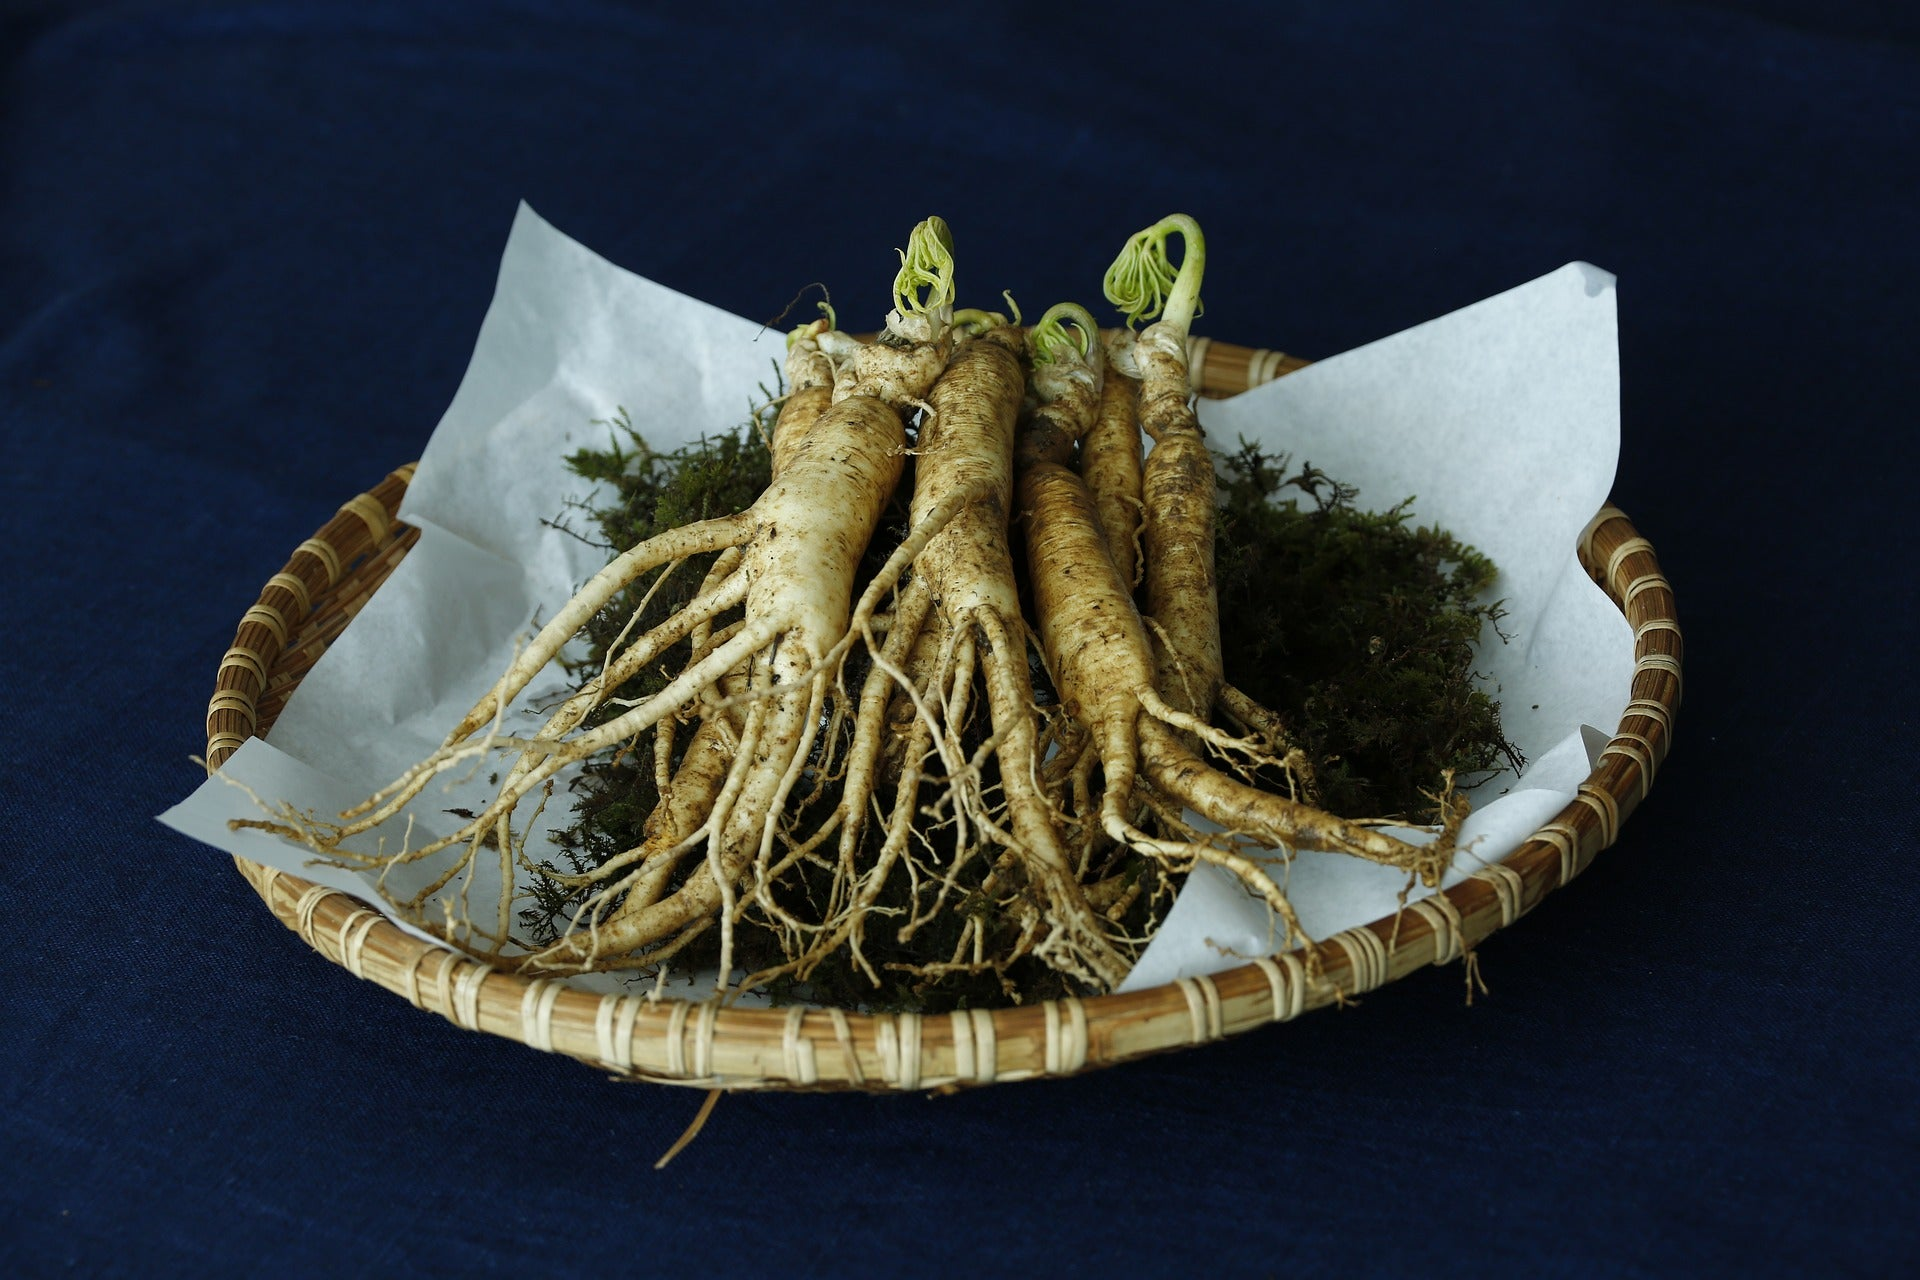 Many positive effects are attributed to the ginseng root